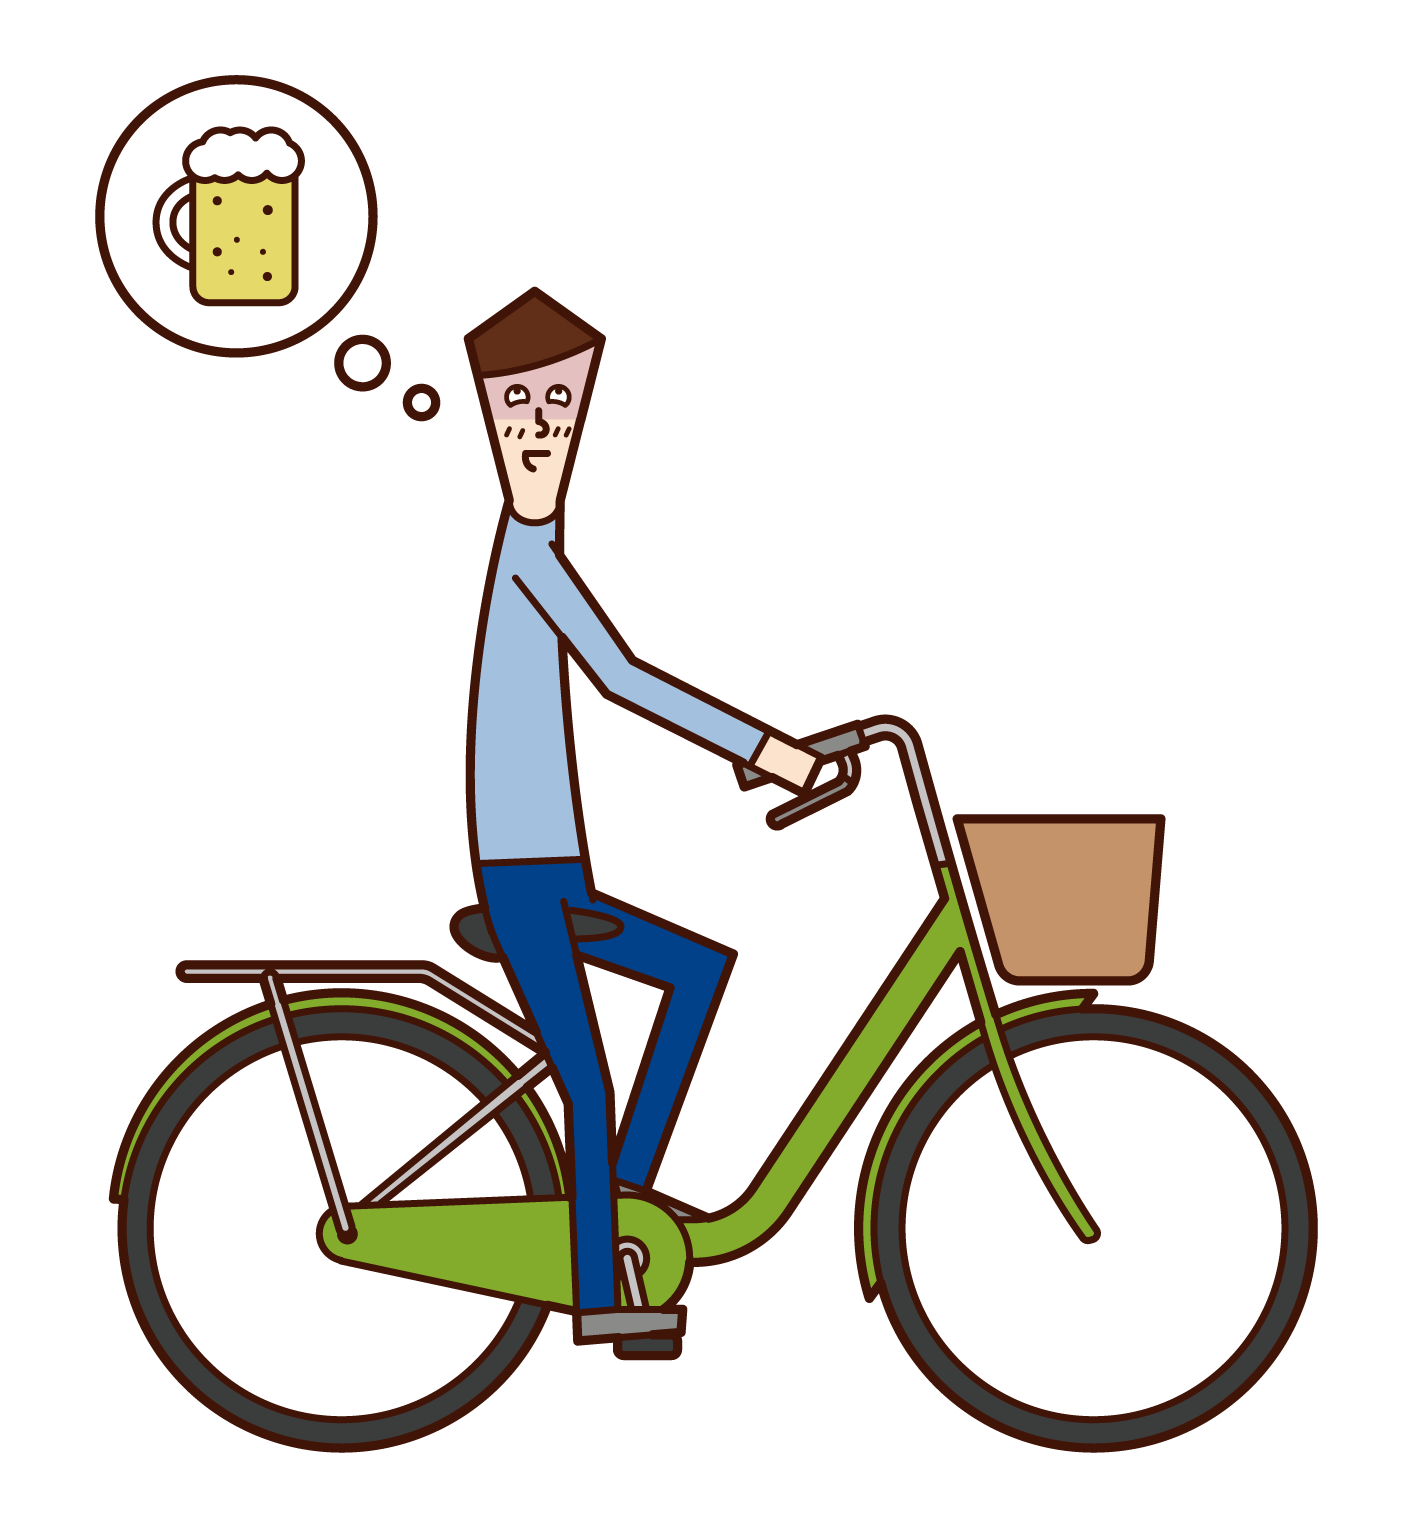 Illustration of a man driving drunk on a bicycle